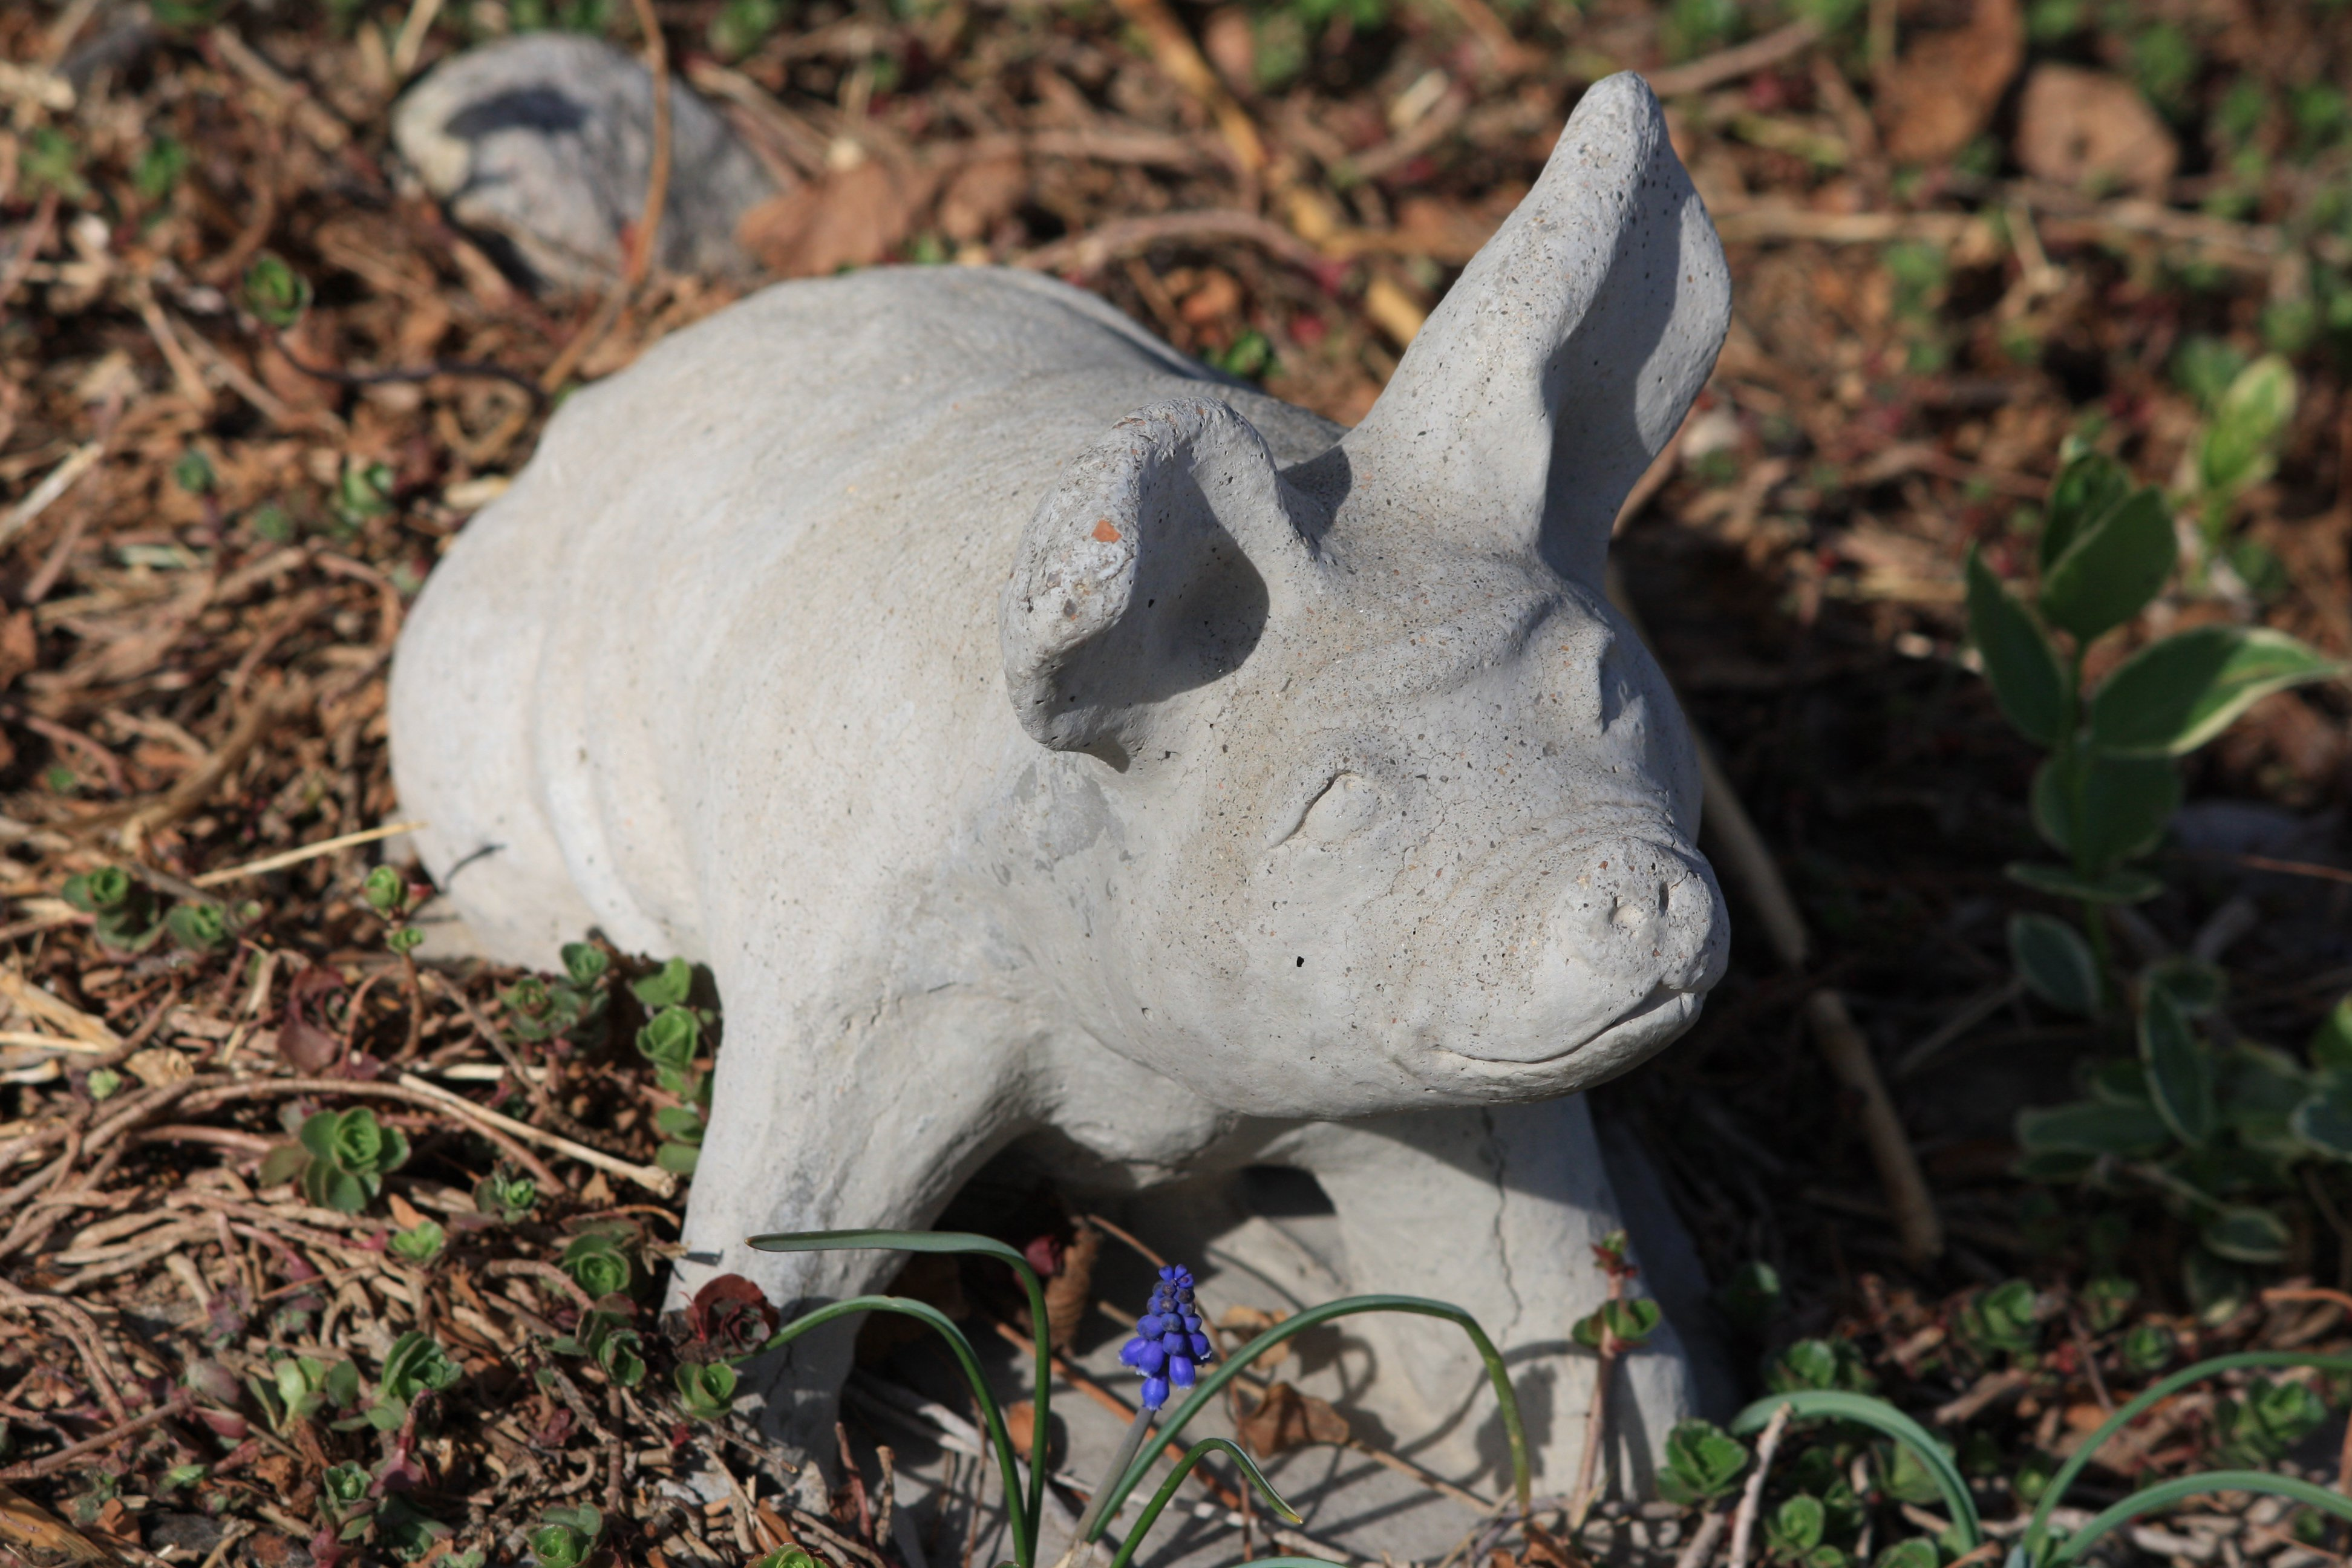 Pig lawn ornament - Pig Garden Figurine Made Of Cement